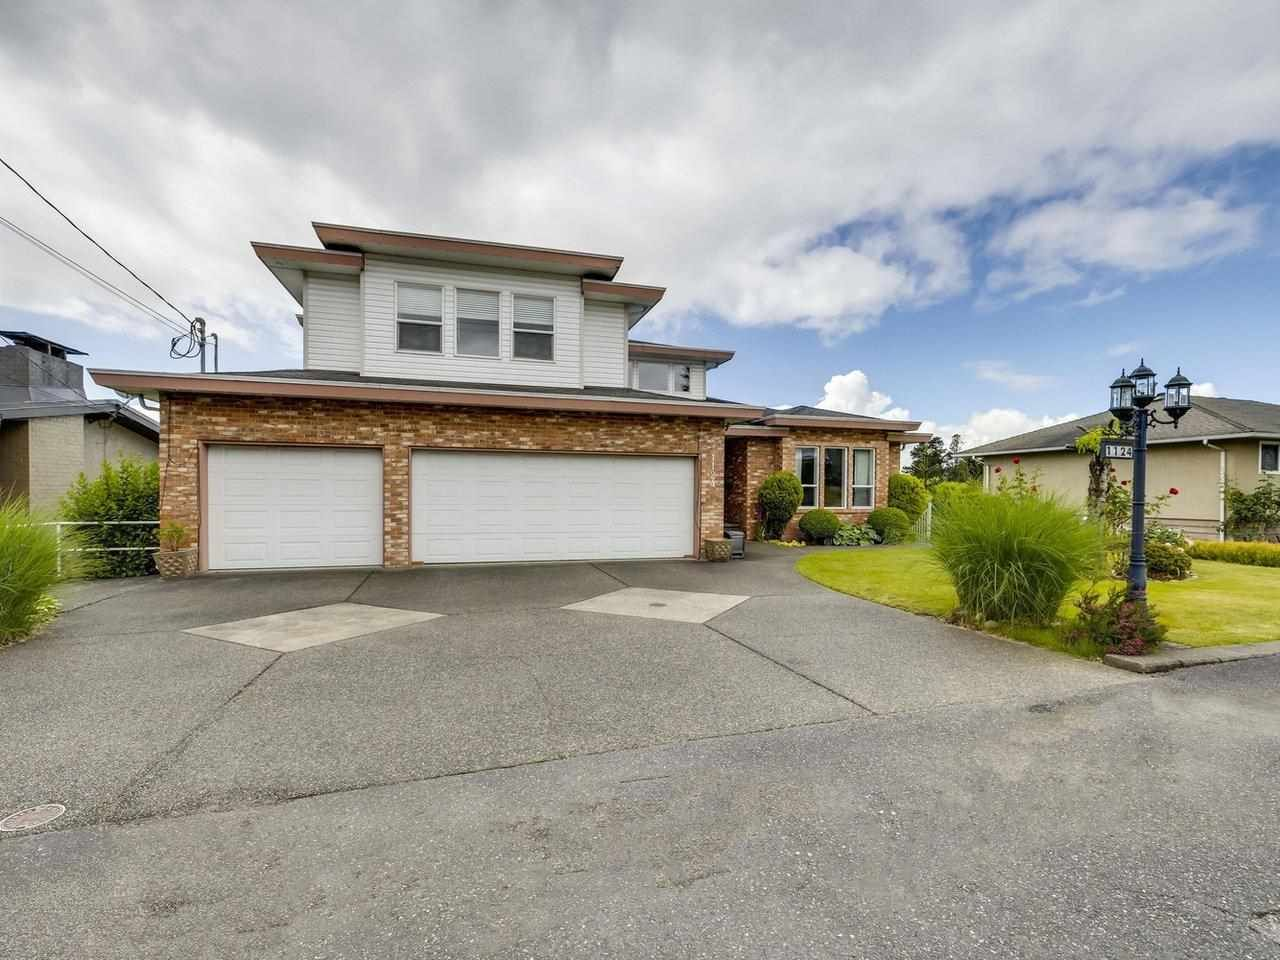 Main Photo: 1124 DANSEY Avenue in Coquitlam: Central Coquitlam House for sale : MLS®# R2589636